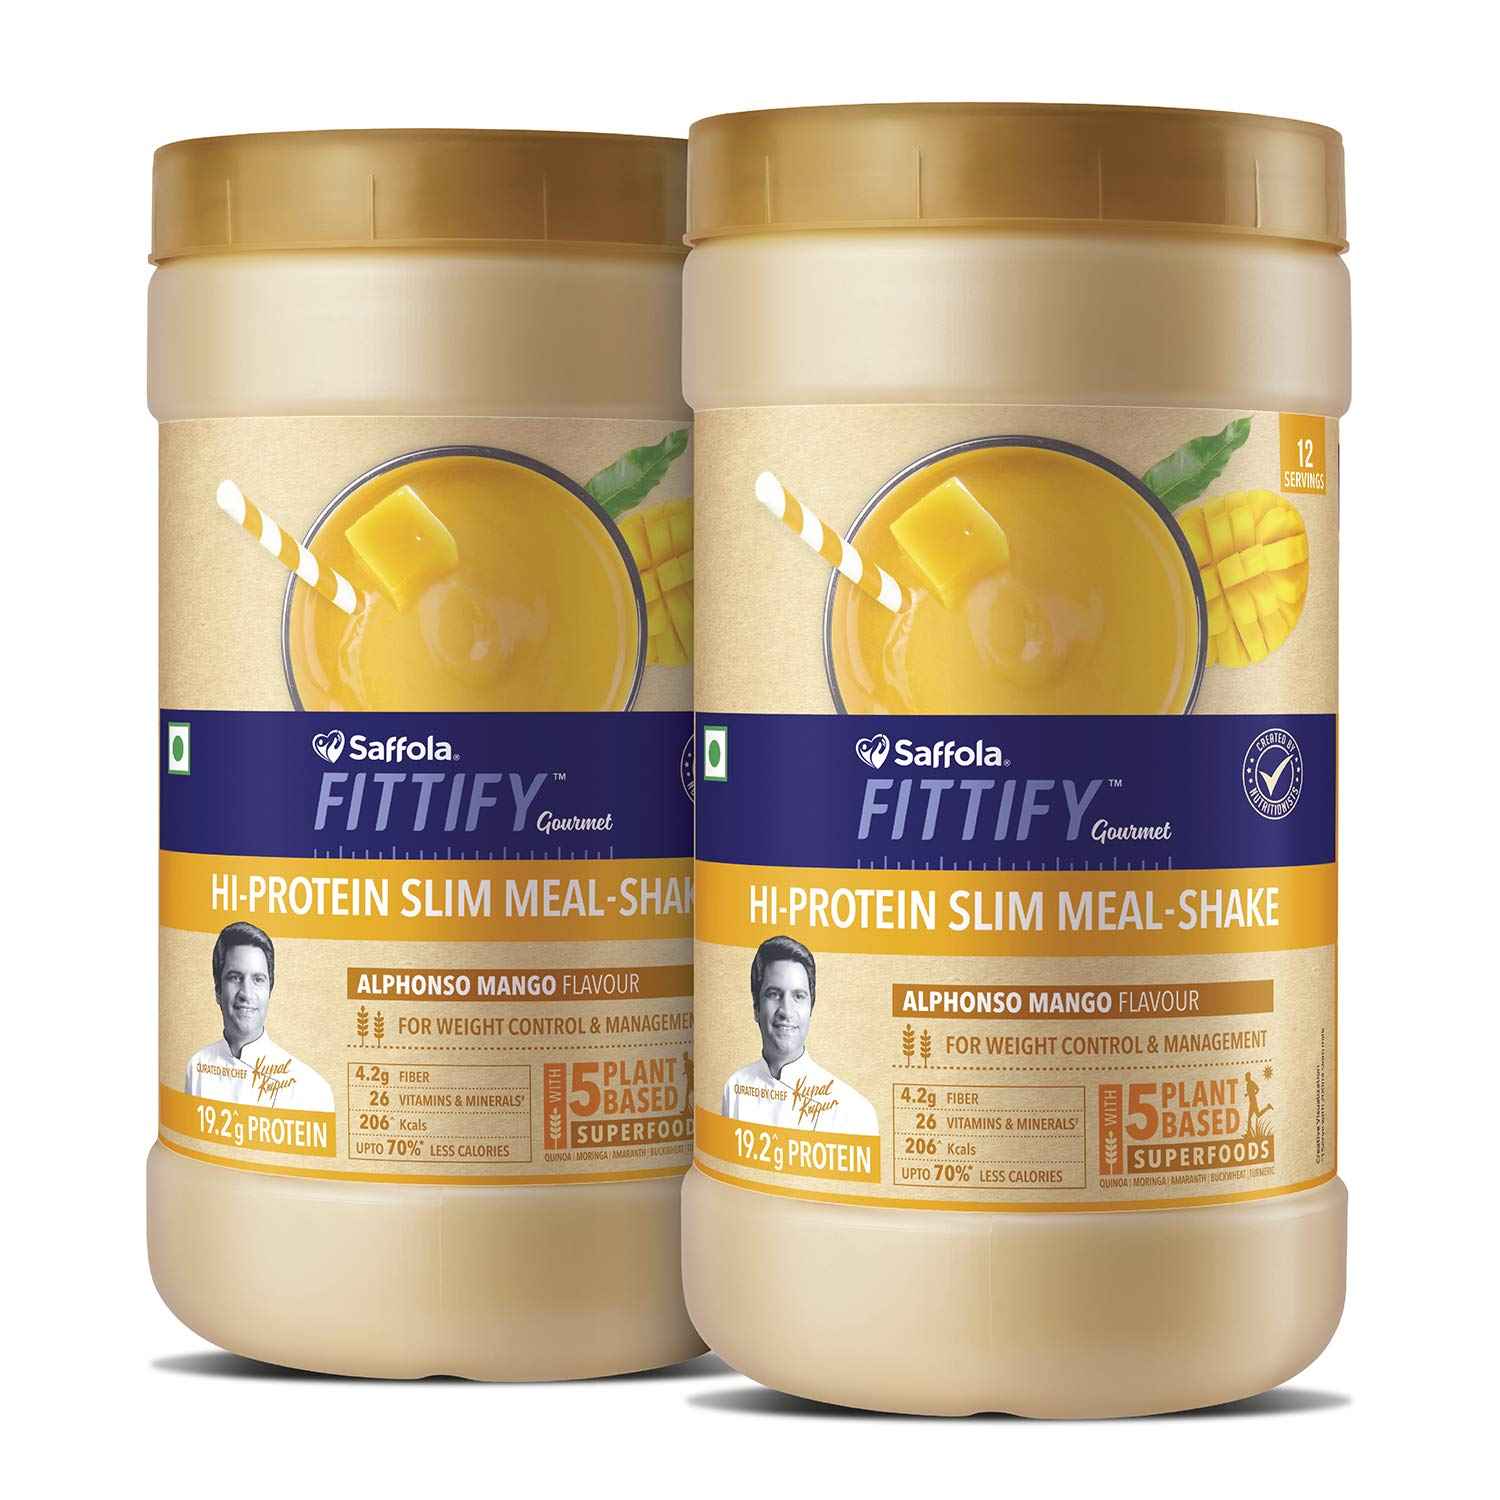 Saffola FITTIFY Hi Protein Slim Meal-Shake, Meal Replacement with 5 superfoods, Alphonso Mango, 420 gm (12 servings)-Buy One Get One Free product image